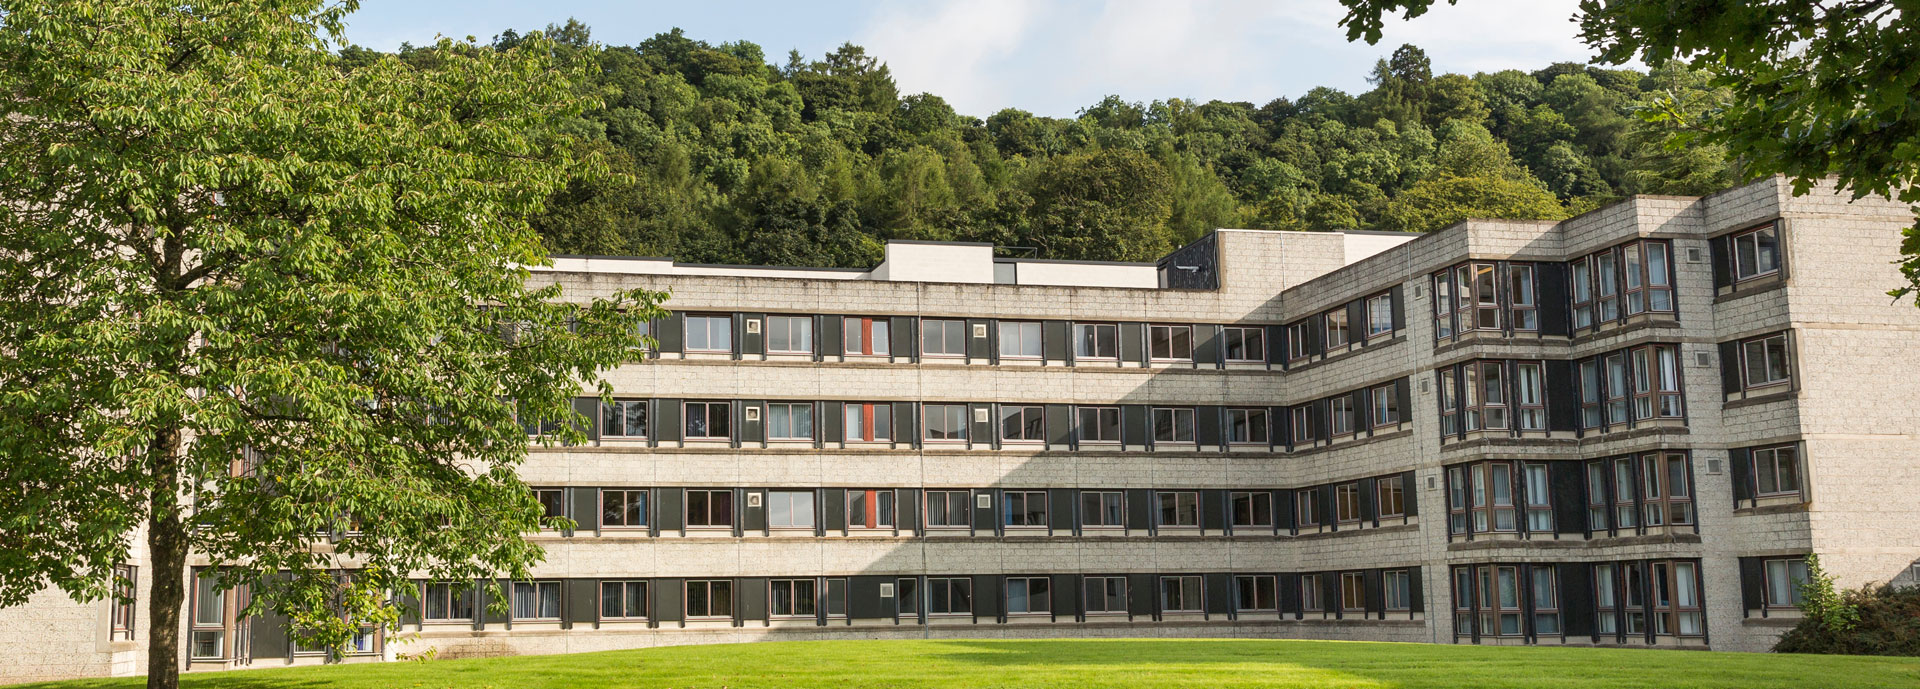 Polwarth House  accommodation,  University of Stirling